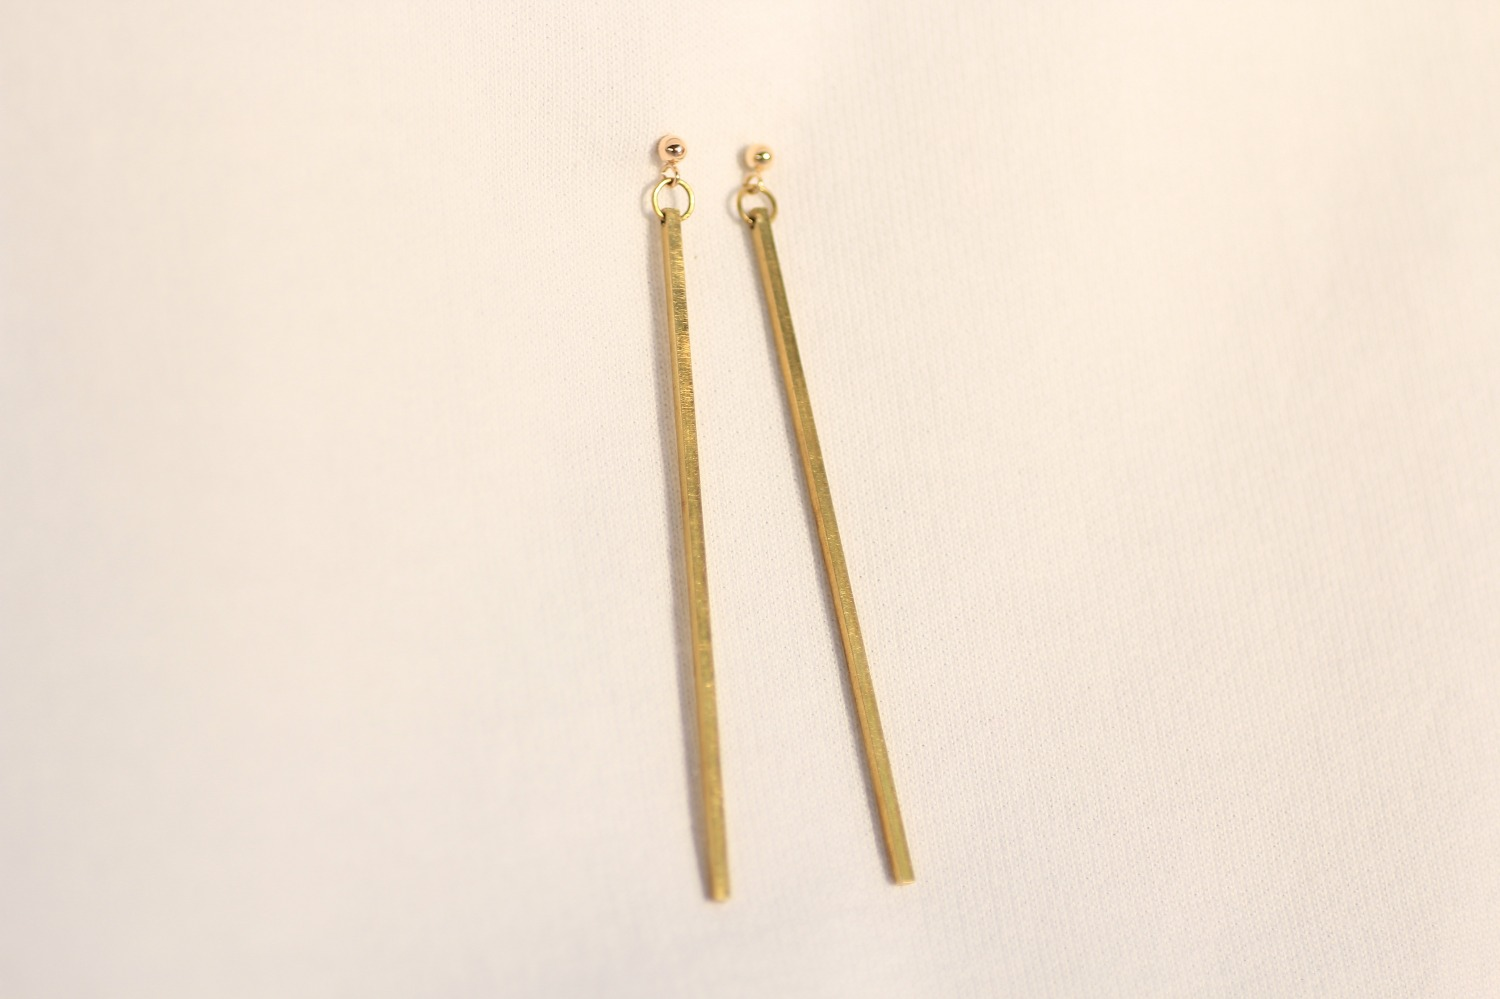 isabel lennse product rod earrings